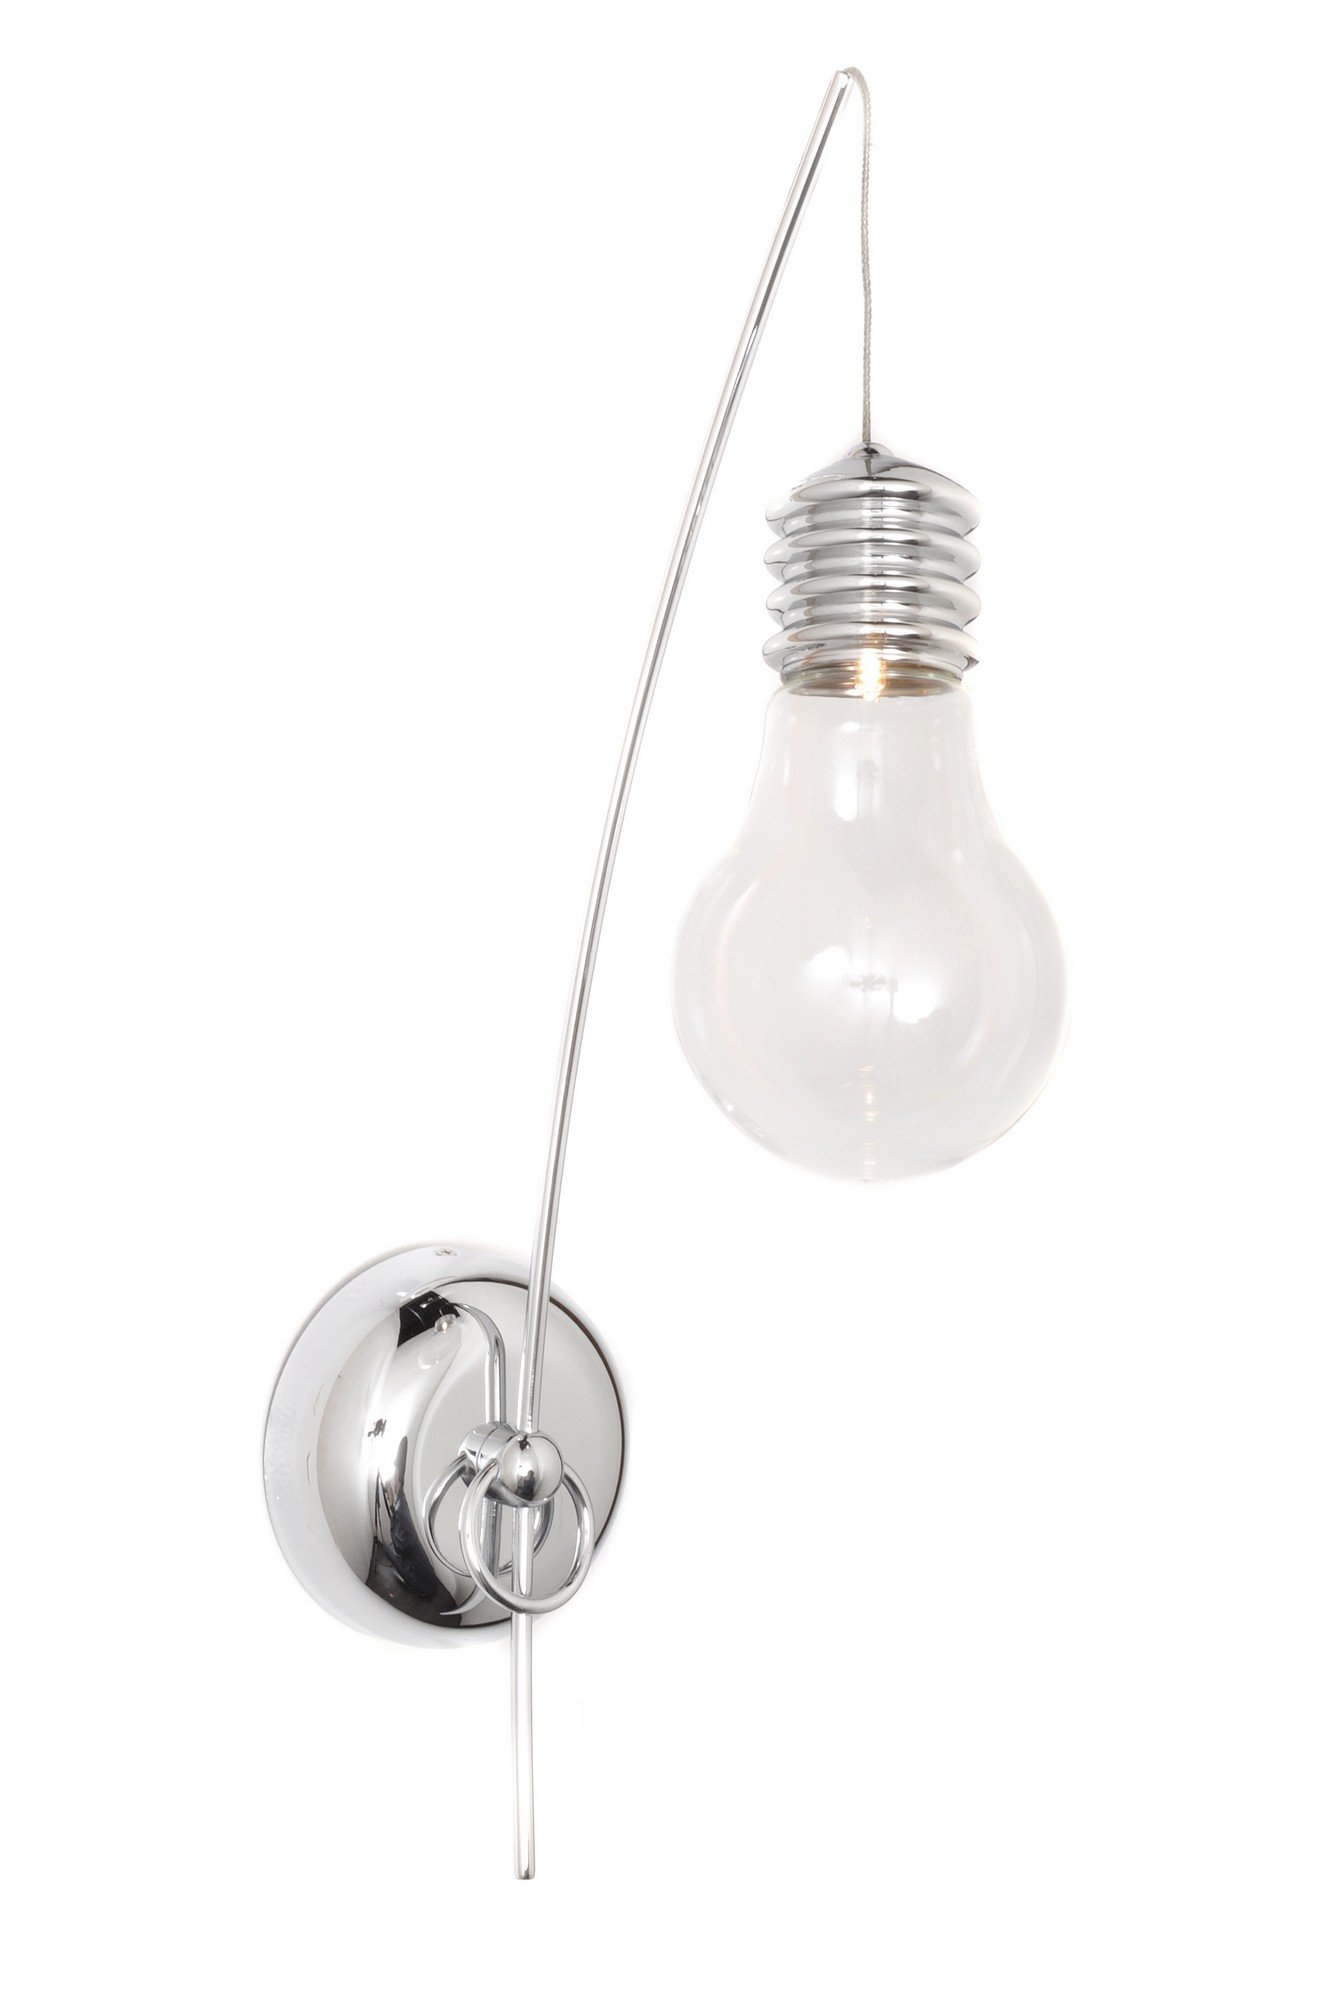 ET2 E22691-18PC Edison 1-Light Wall Sconce, Polished Chrome Finish, Clear Glass, G4 Xenon Bulb, 15W Max., Dry Safety Rated, 2700K Color Temp., Standard Dimmable, Natural Fiber Shade Material, 2016 Rated Lumens